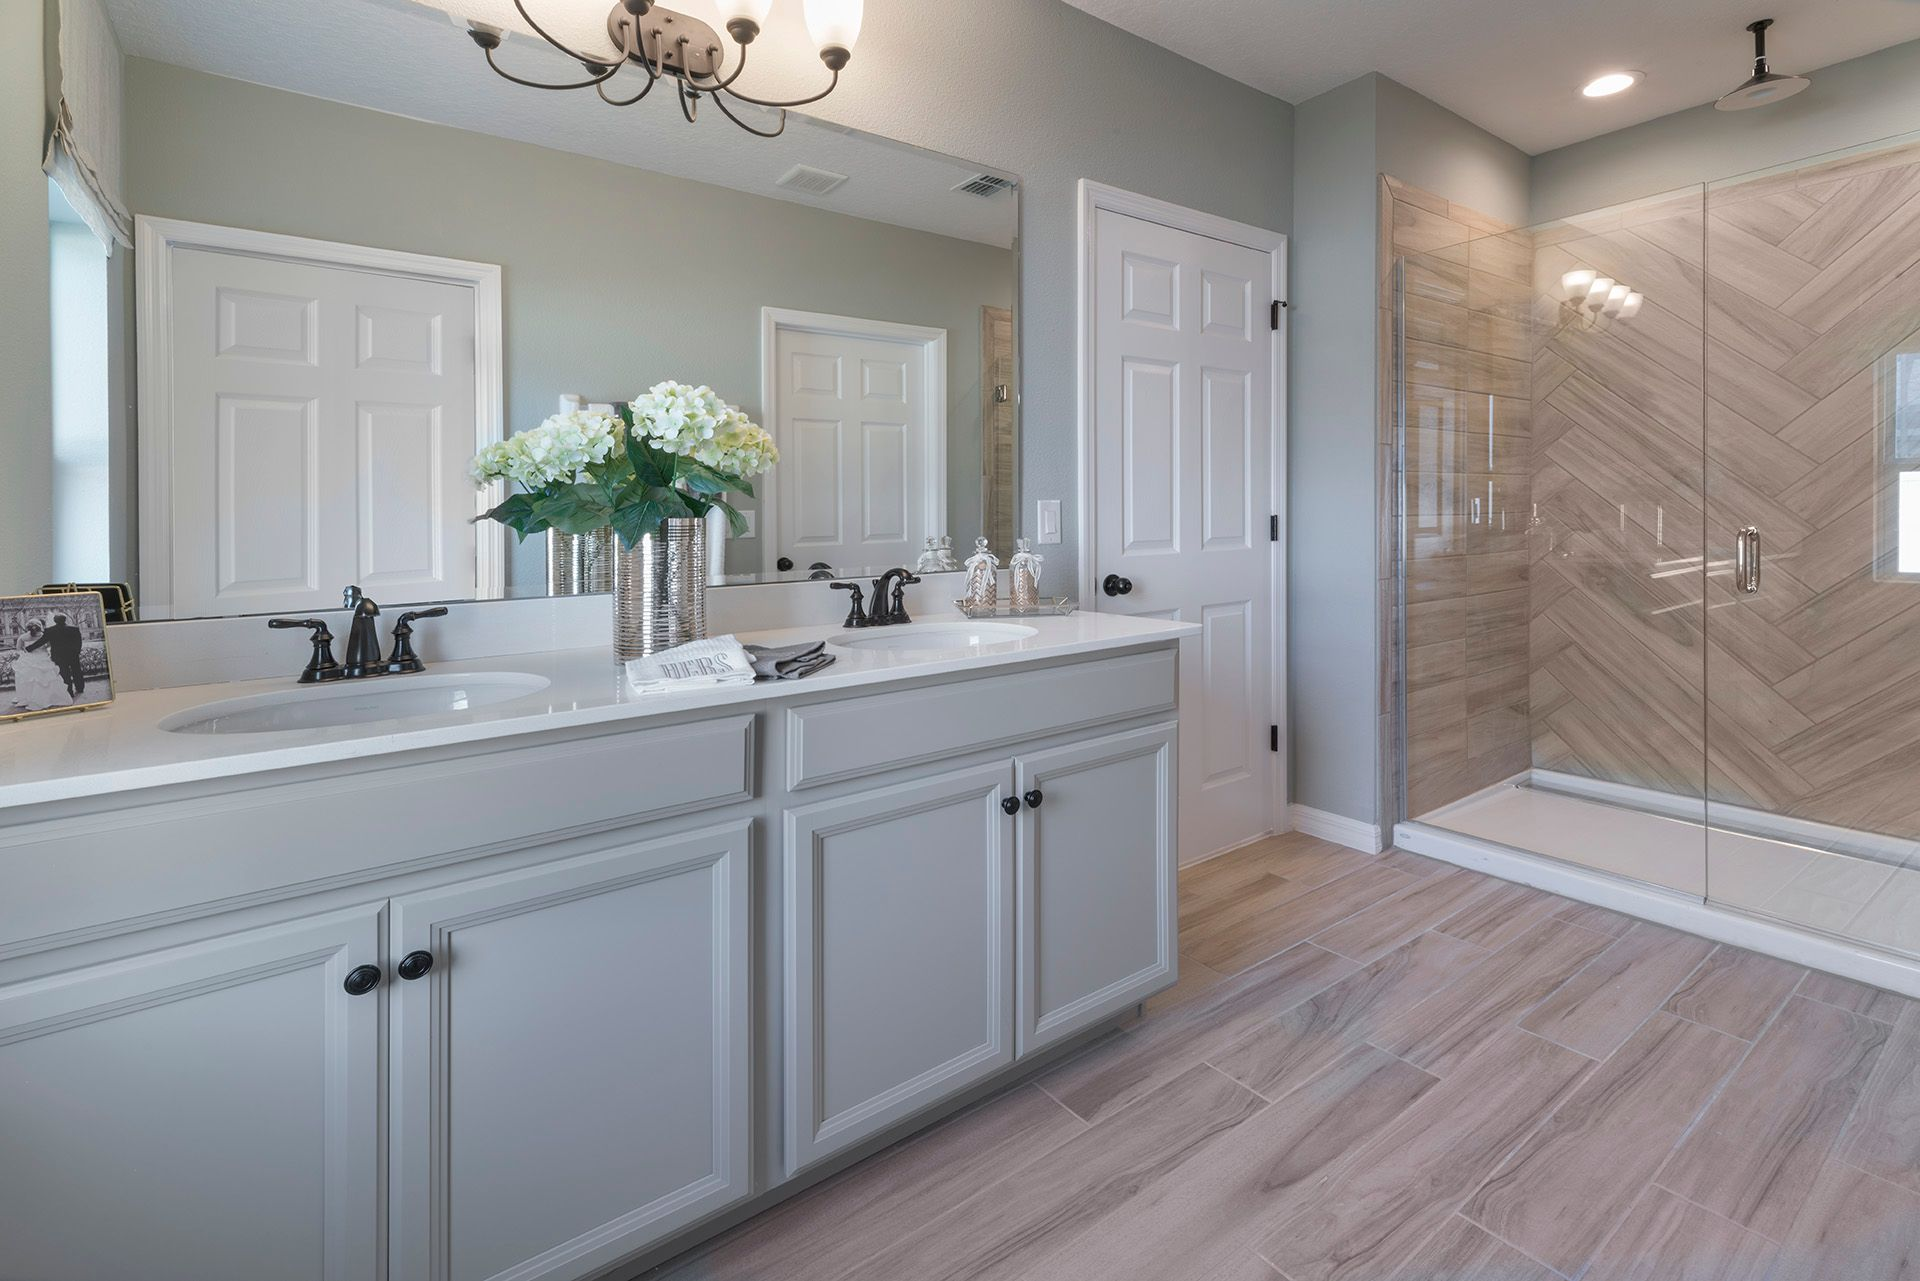 Bathroom featured in the Greenwich Bonus By Hanover Family Builders in Lakeland-Winter Haven, FL